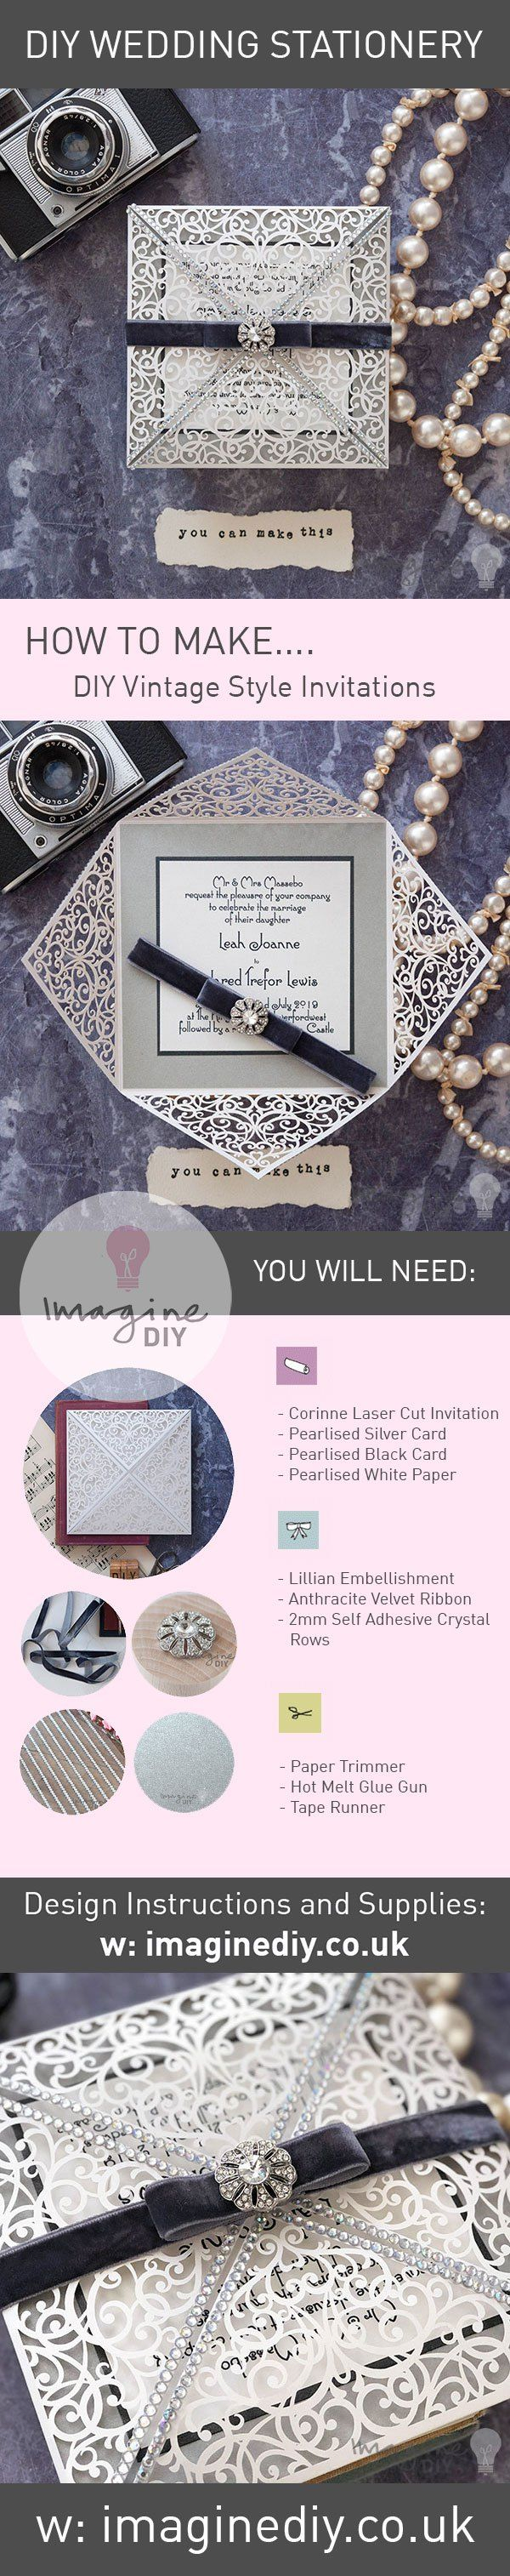 Make your own 1920s art deco wedding invitations in silver and white